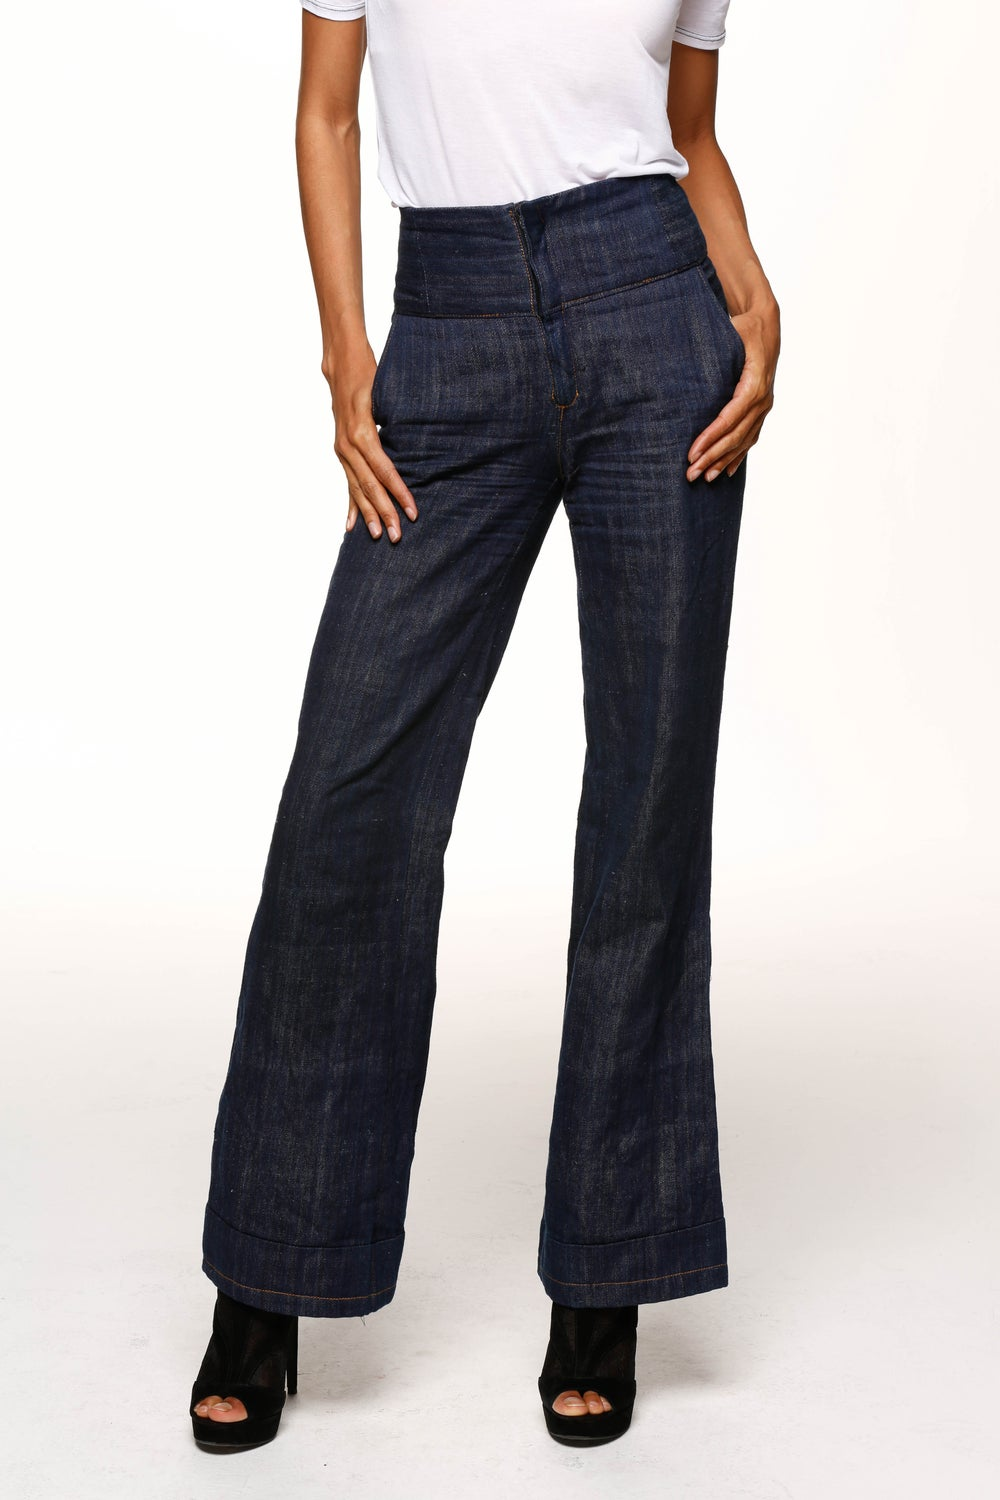 Image of High Waisted Lift Pants